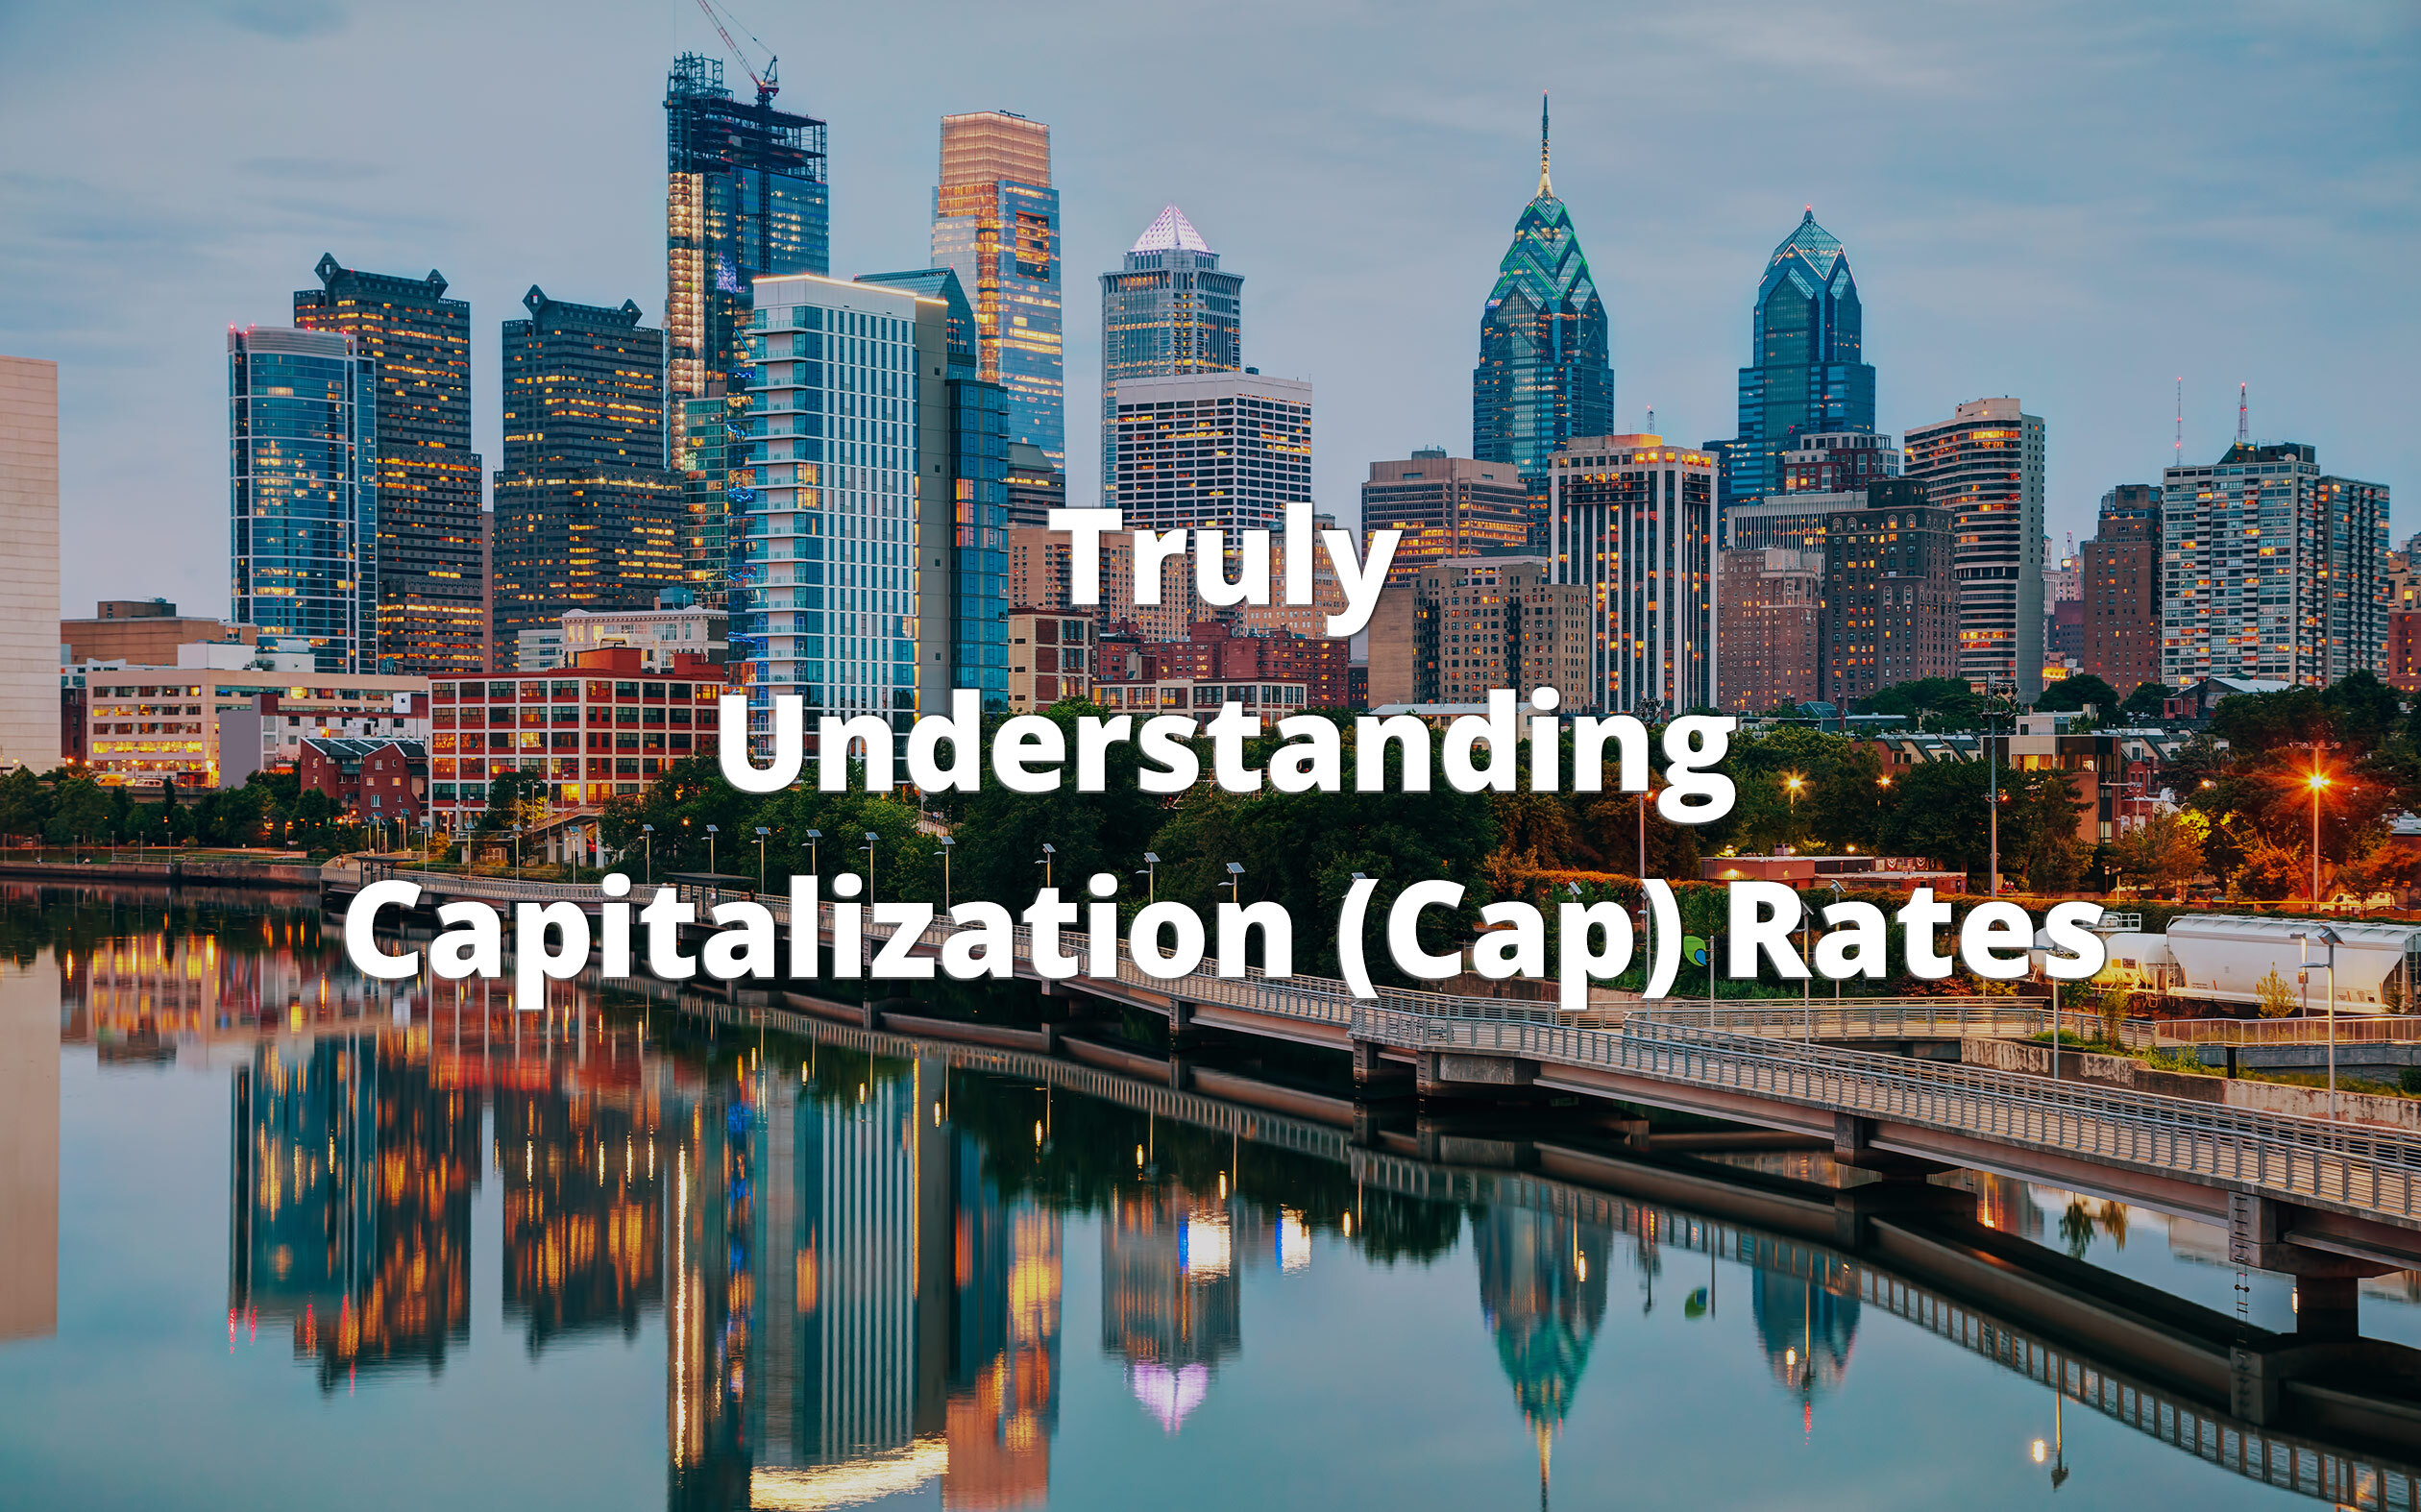 Truly Understanding Capitalization (Cap) Rates